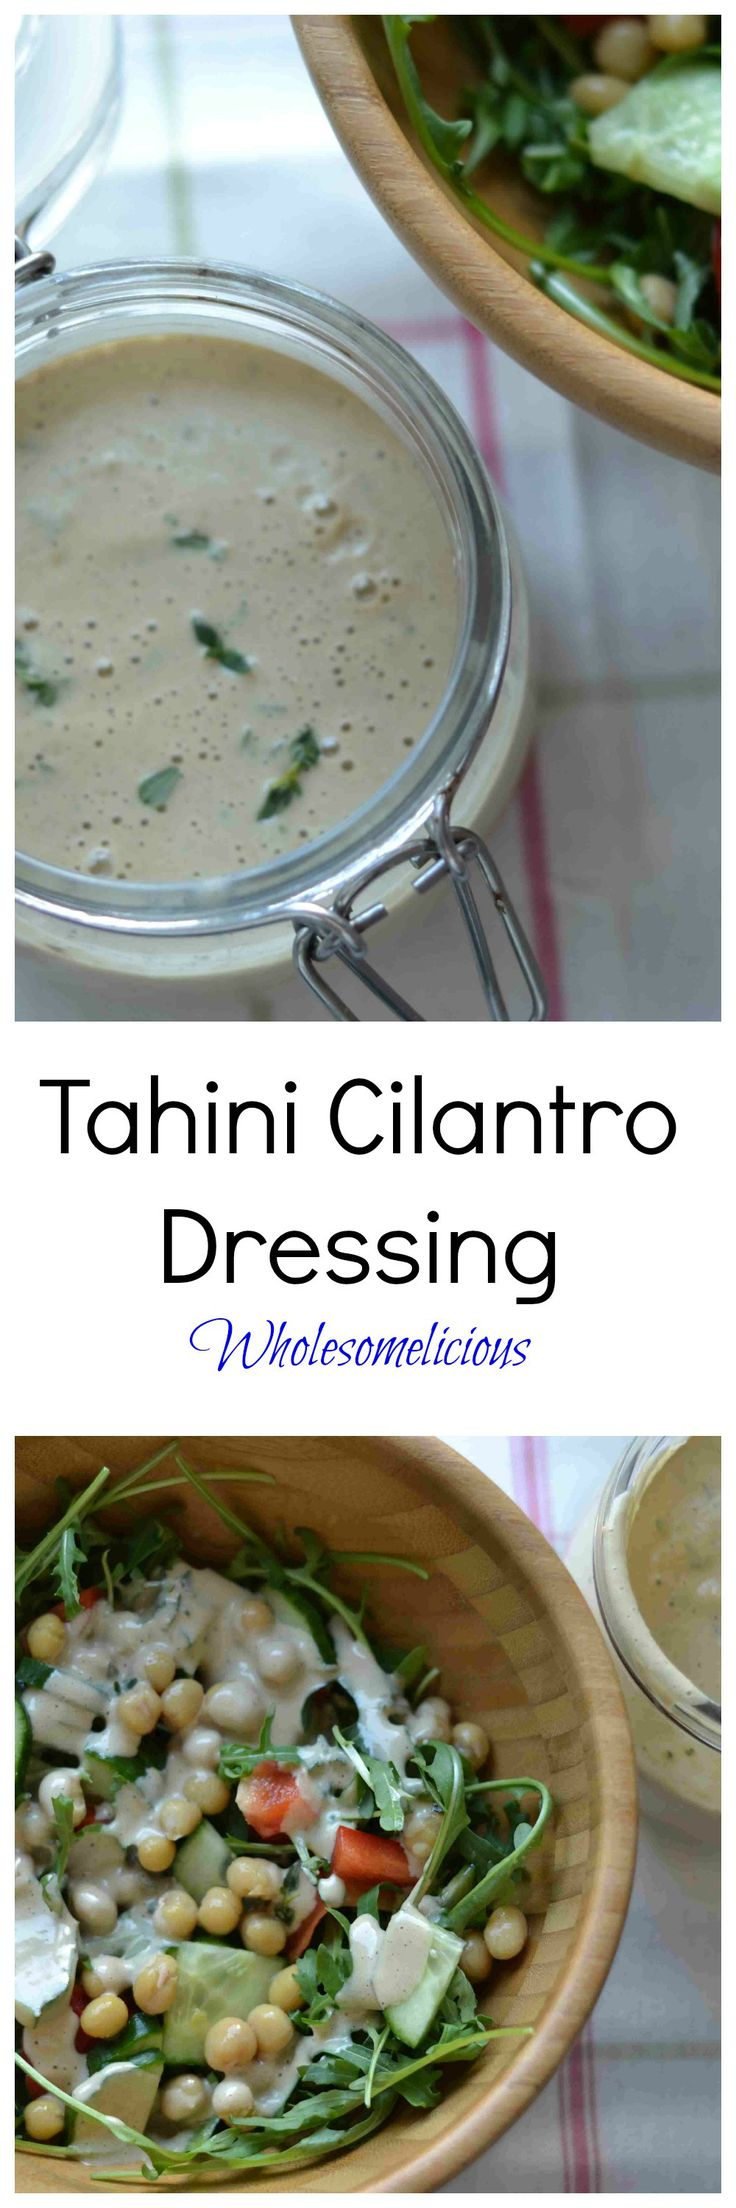 My absolute favorite salad dressing! Nutrient powerhouse with tahini, lemon, cilantro, and apple cider vinegar. Vegan and Paleo.